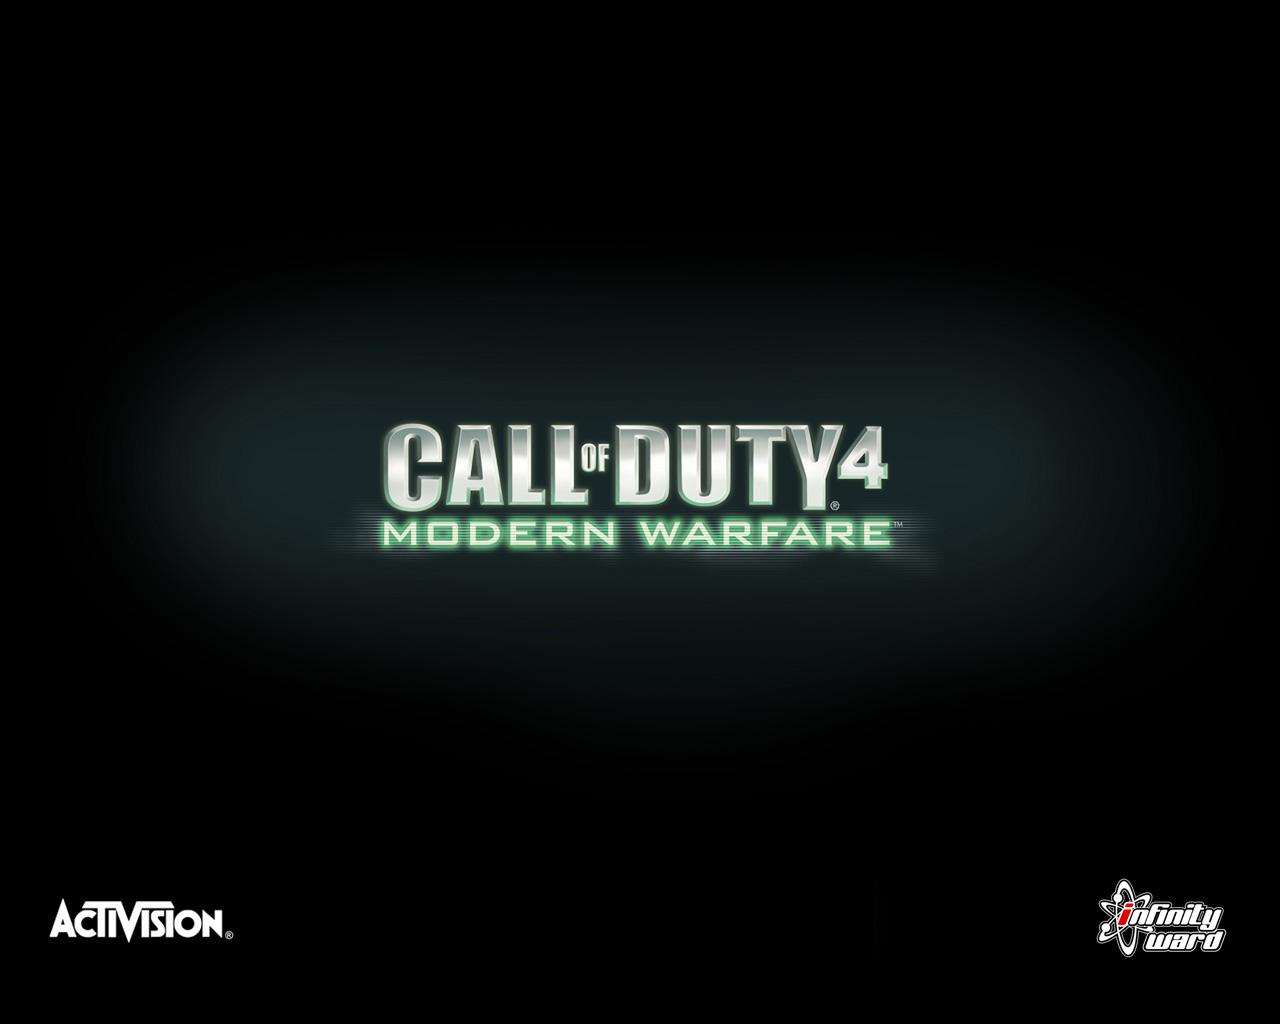 http://4.bp.blogspot.com/-K0CWIBAfoYY/Tj0J5I8jKDI/AAAAAAAACgY/Yr9aCnZZPF8/s1600/Call_of_Duty_Modern_Warfare_CoD4_HD_Wallpaper_.jpg